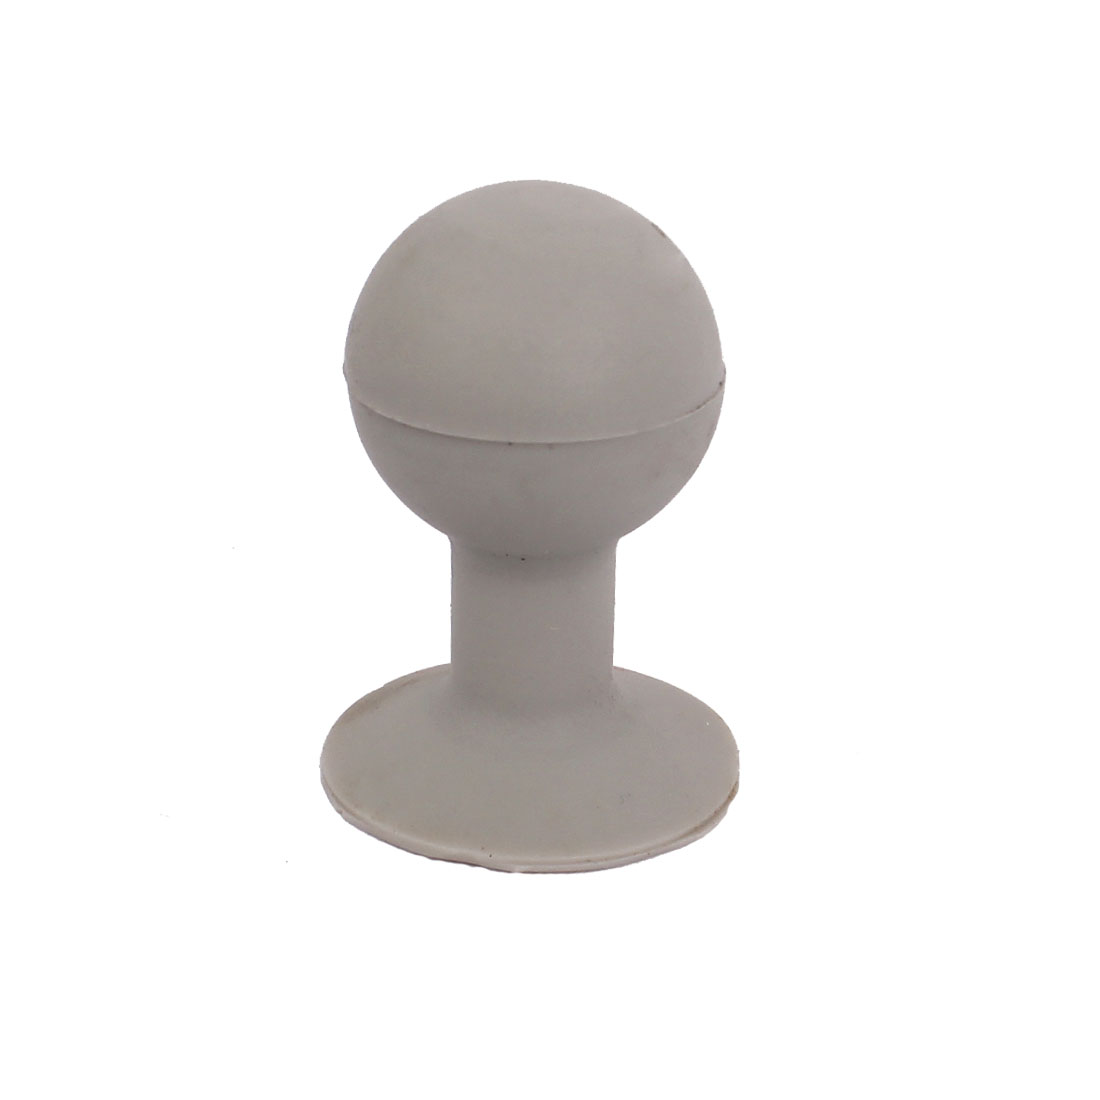 Gray Rubber Ball Shape Suction Sucker Holder Support for Cell Phone